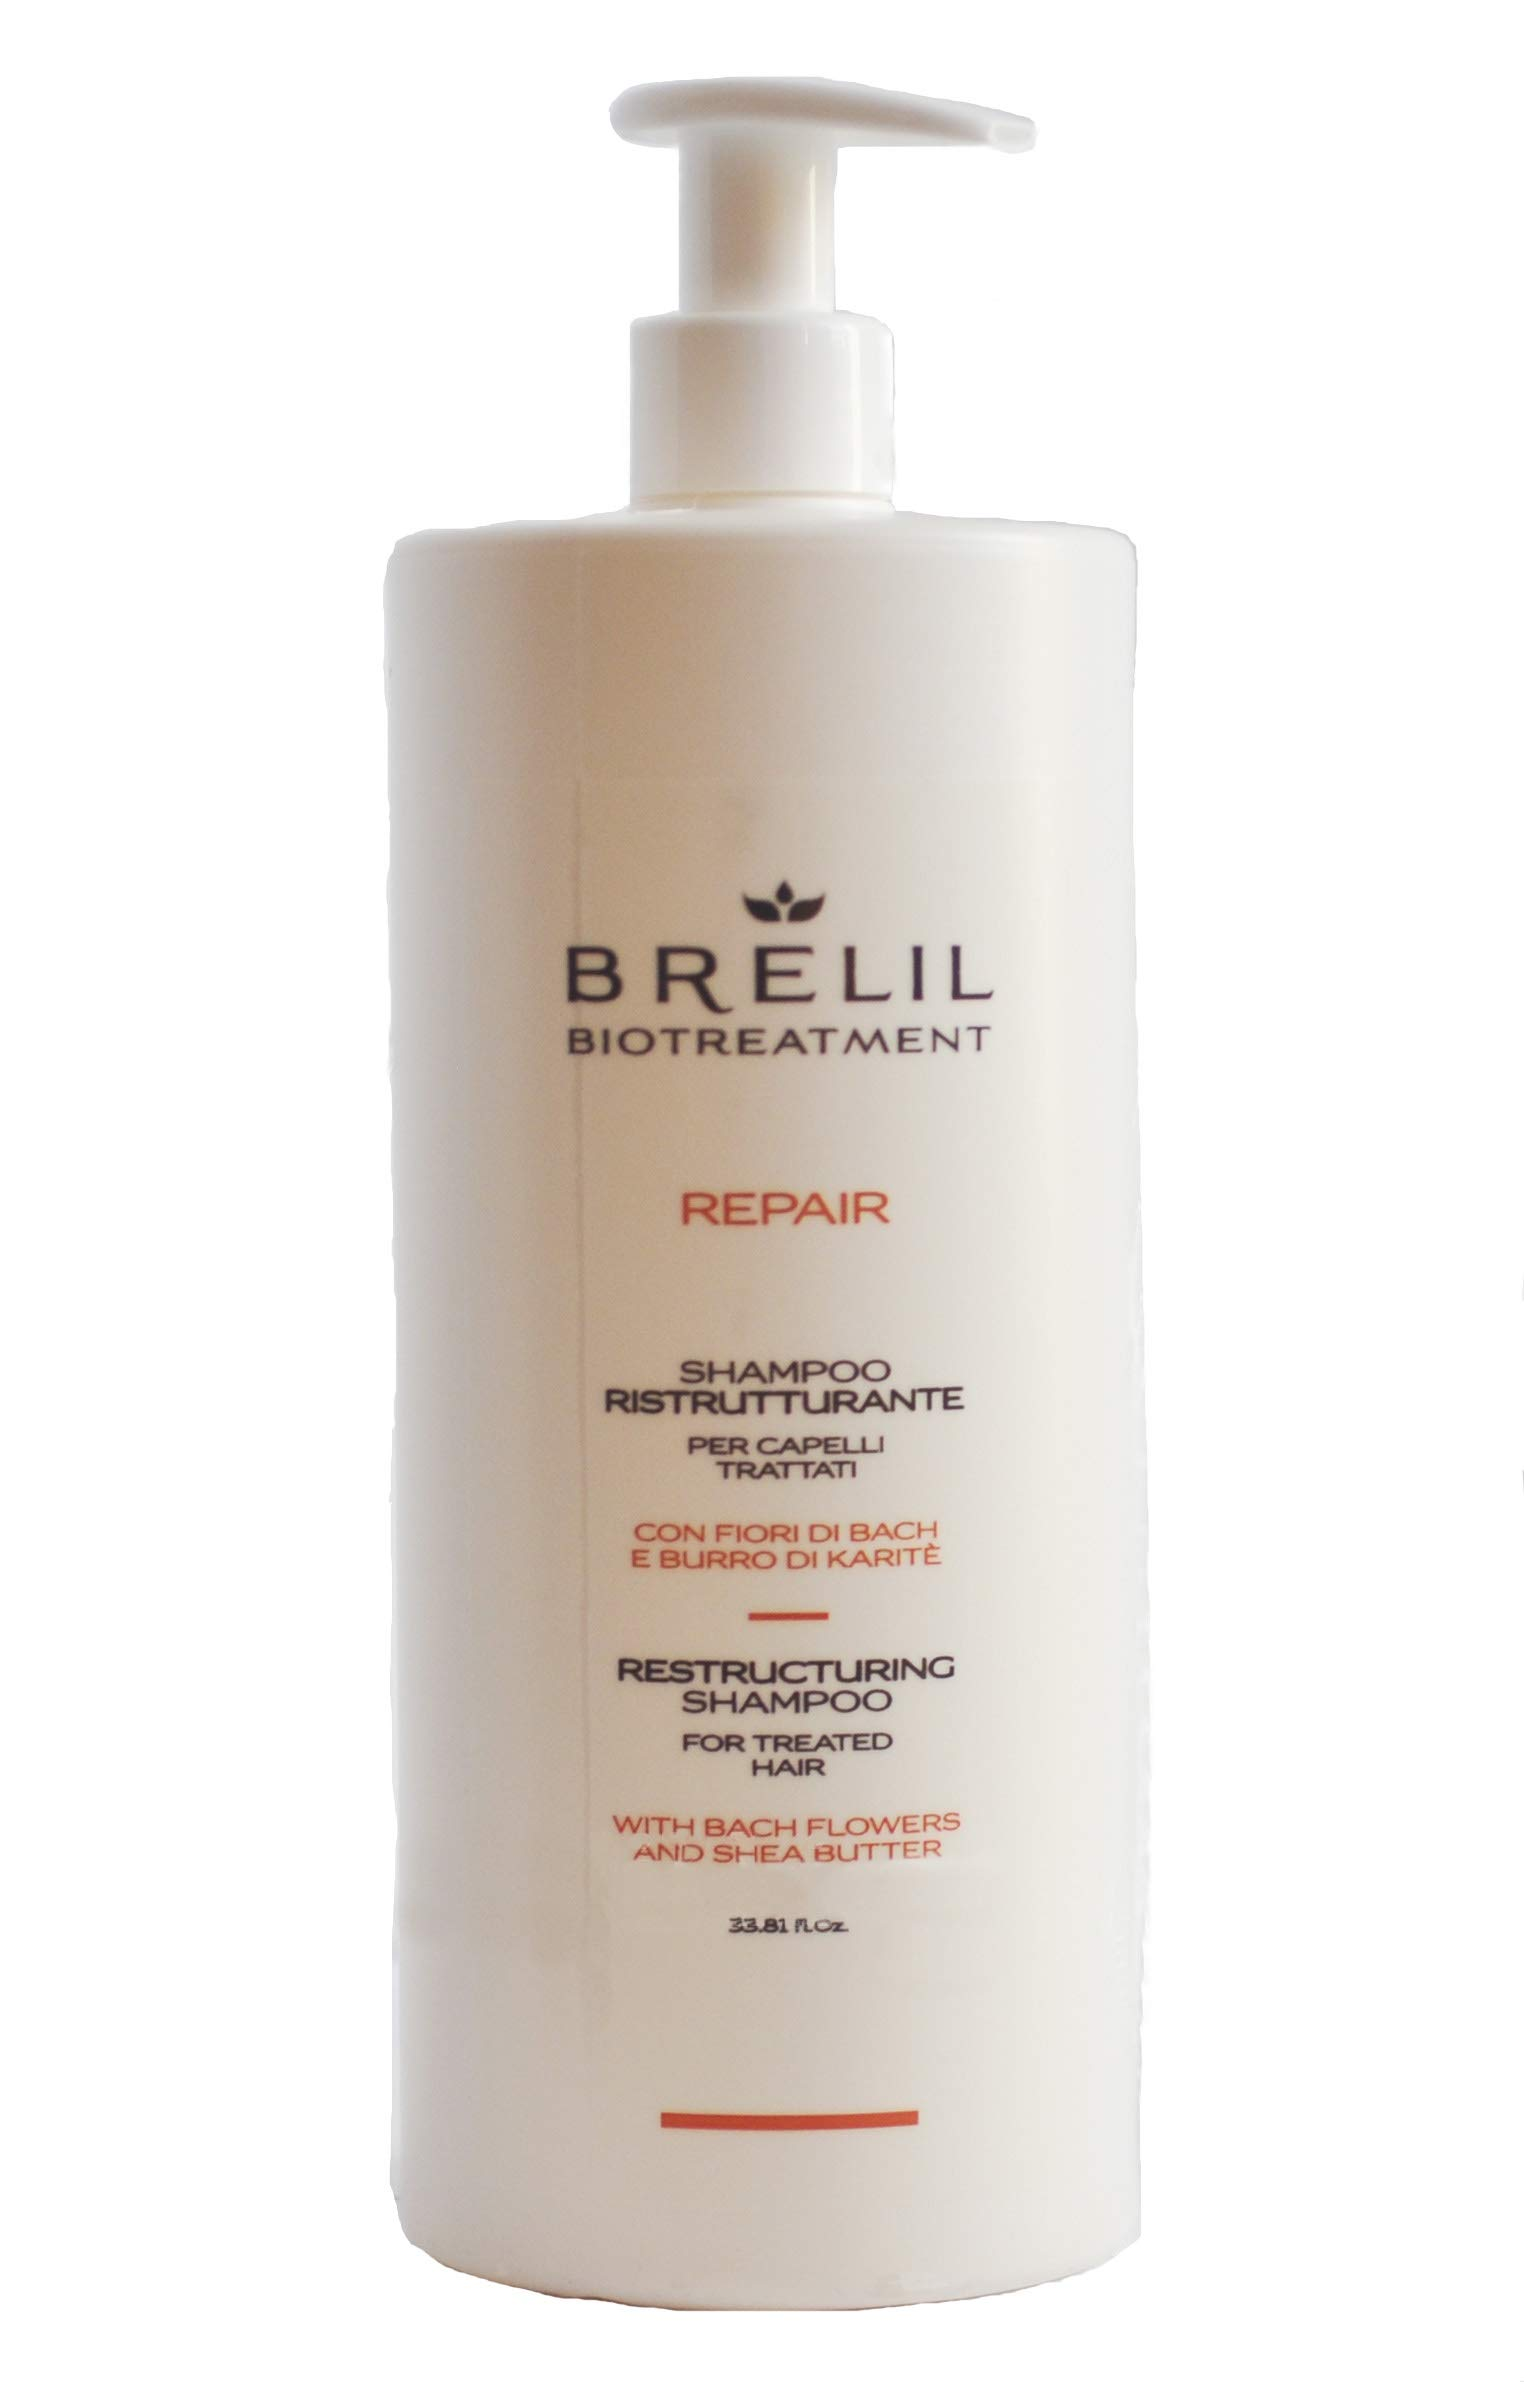 Brelil Bio Treatment Repair Shampoo with Bach Flowers and Organic Shea Butter for Treated Hair (33.81 fl.oz.)